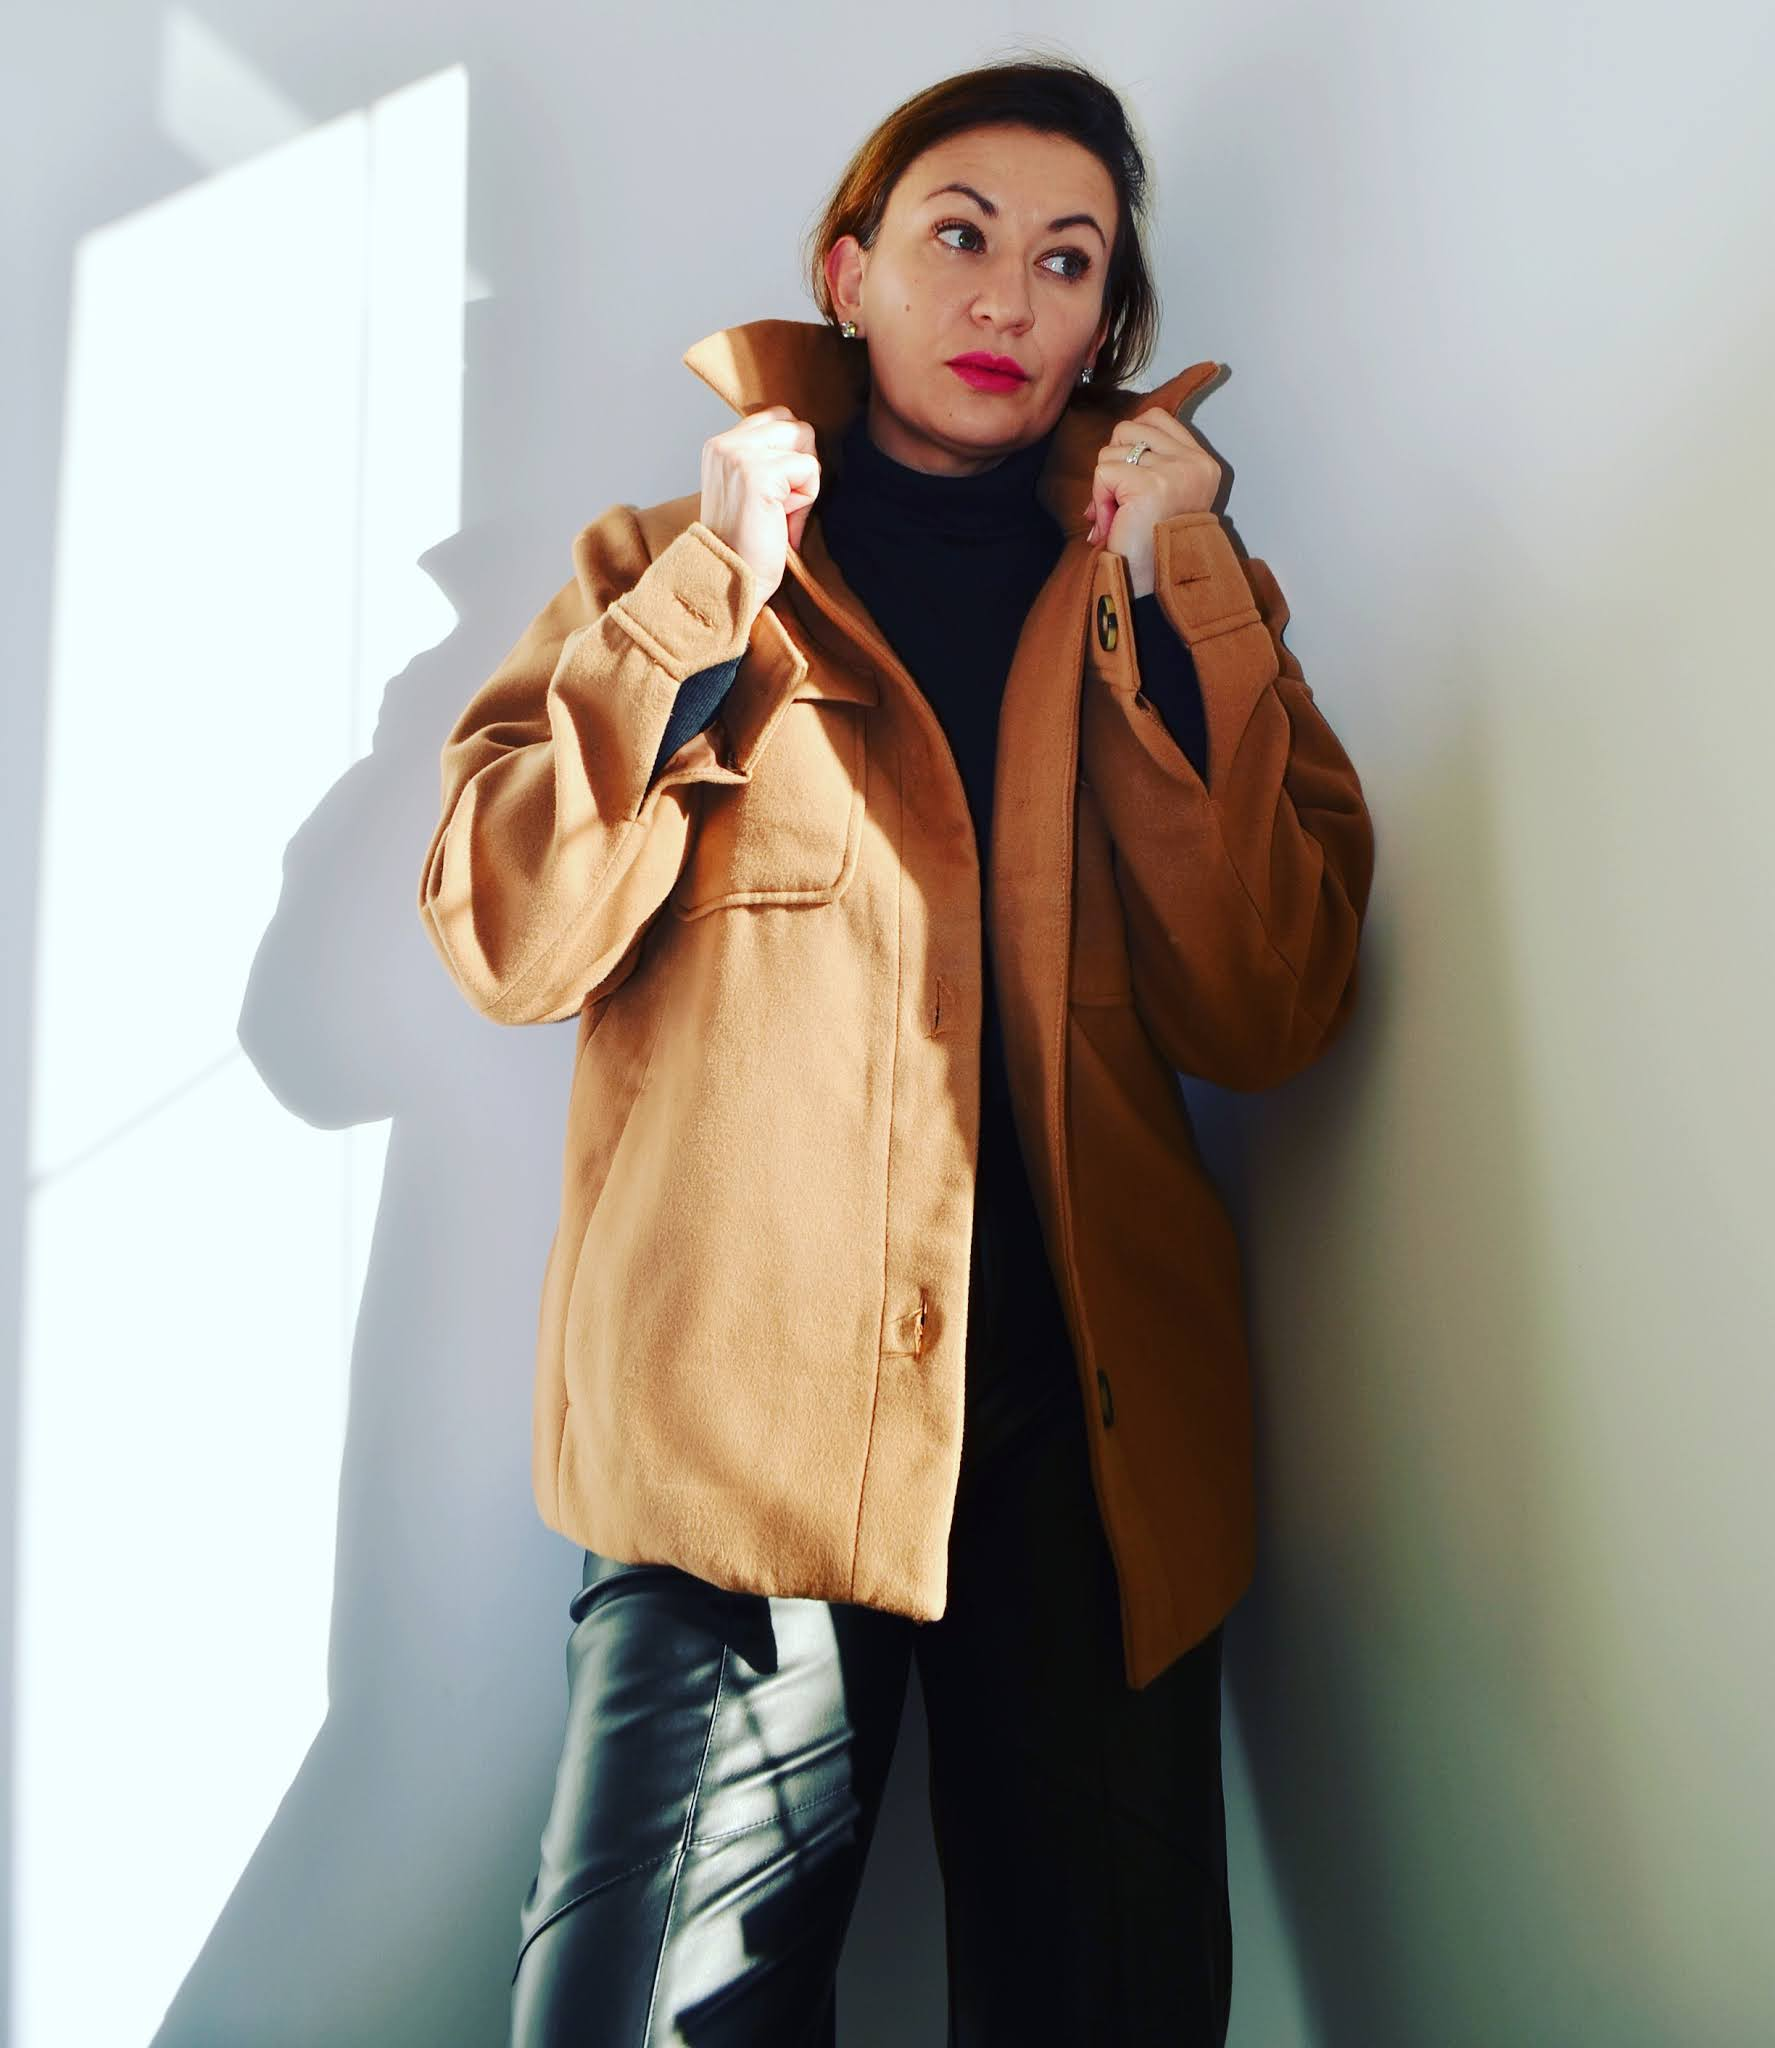 @adrianastyle_stylist,moda;fashion;blog modowy;promocje;obniżki;tydzień wyprzedaży,Bonprix leather trousers,Born2be heavy boots;Bonprix oversized shirt,Zara Heavy Boots,